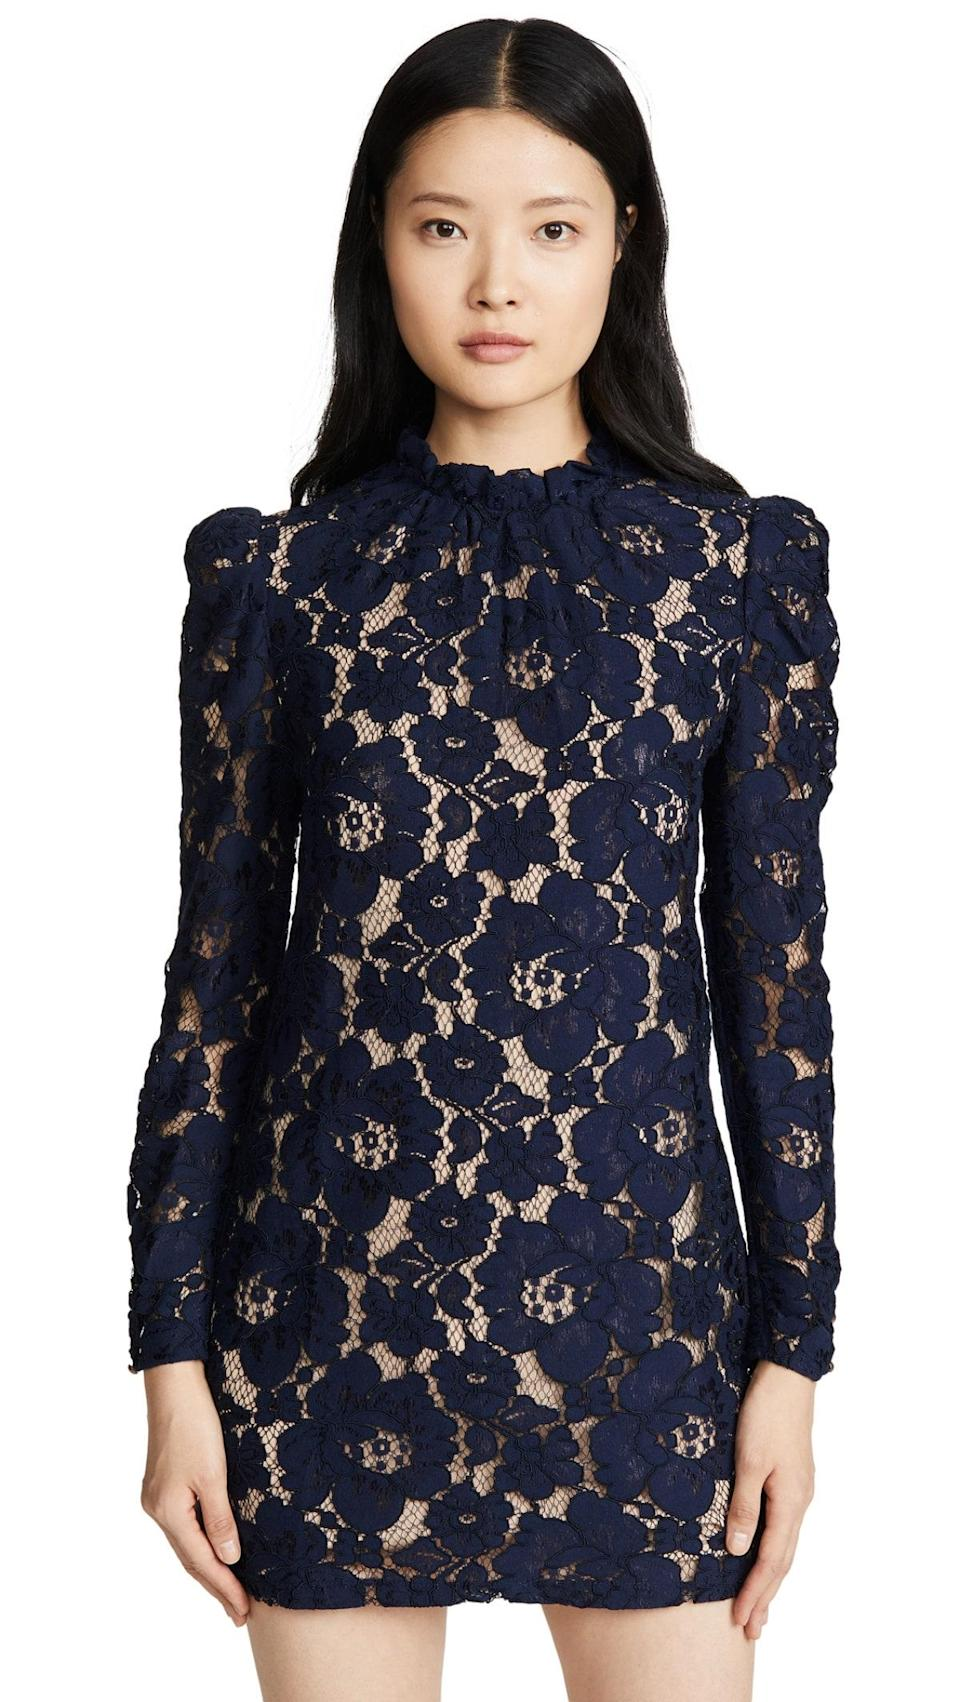 """A little lace, a lot to love: This versatile mini dress will earn a prime spot in your cold-weather rotation for date nights and other special occasions, thanks to its easy-to-style silhouette and neutral color. $69, Shopbop. <a href=""""https://www.shopbop.com/emma-puff-sleeve-dress-wayf/vp/v=1/1560675561.htm"""" rel=""""nofollow noopener"""" target=""""_blank"""" data-ylk=""""slk:Get it now!"""" class=""""link rapid-noclick-resp"""">Get it now!</a>"""